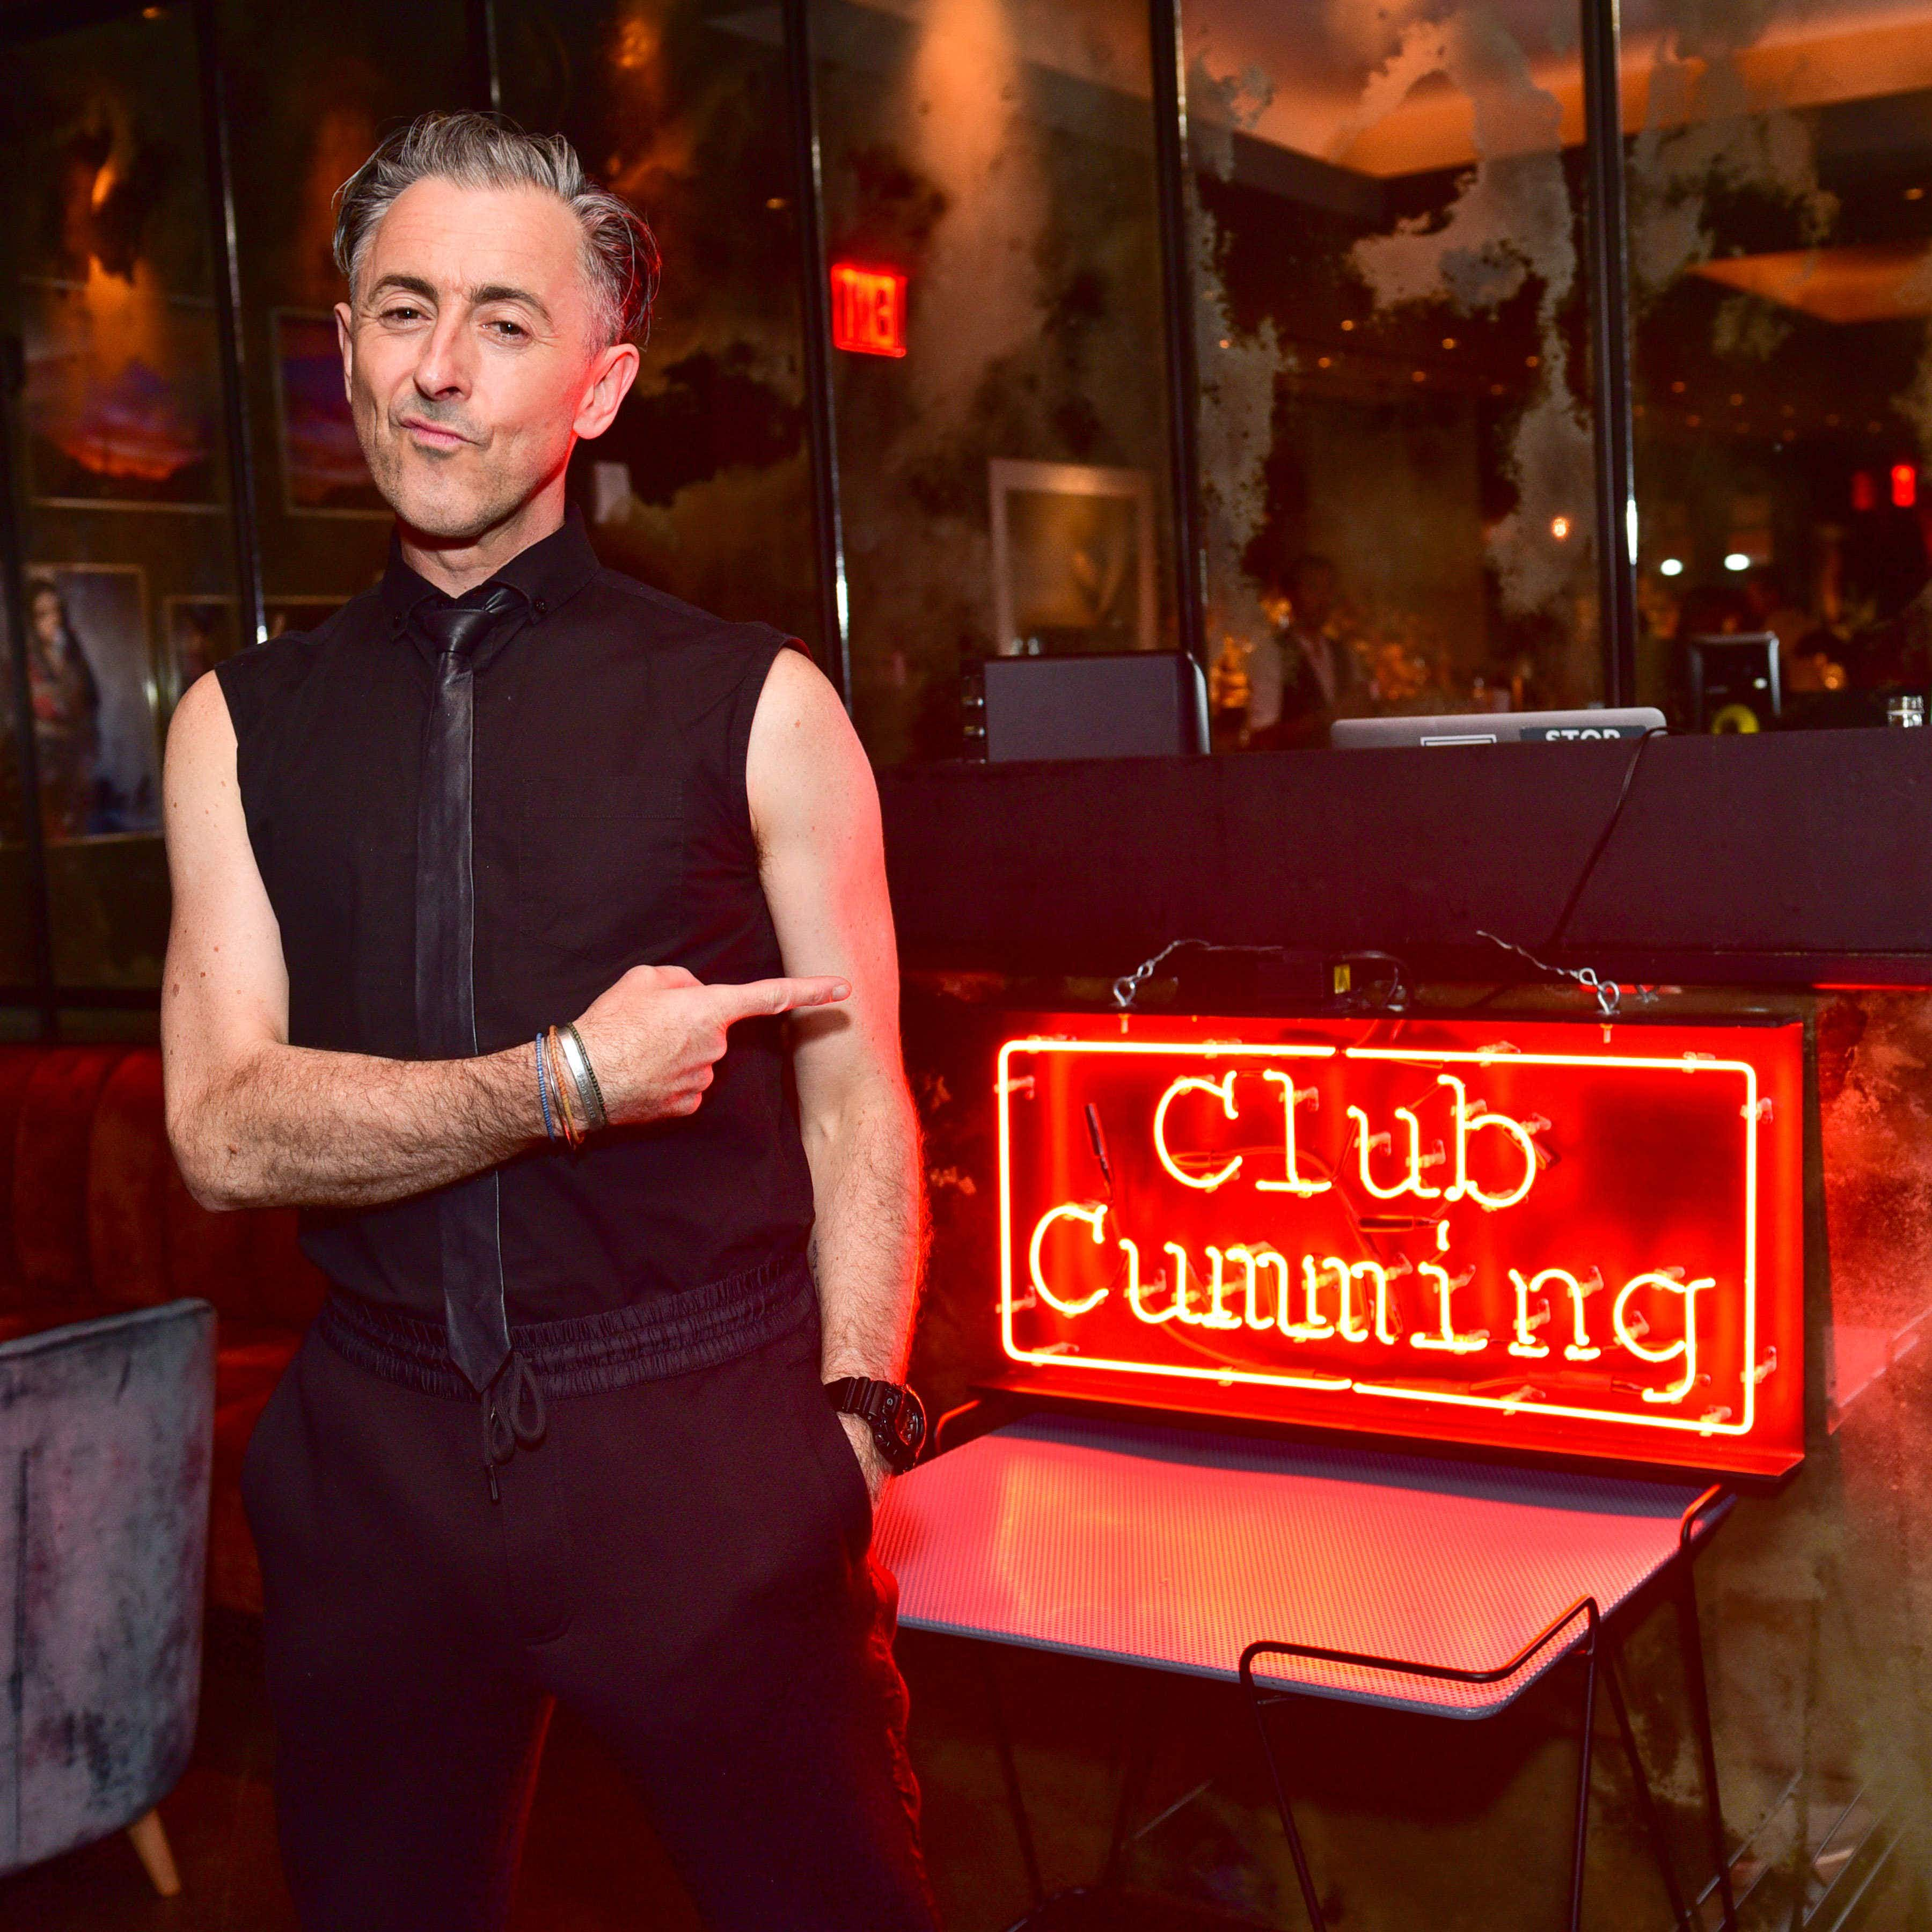 Alan Cumming's new venue combines debauchery and knitting in NYC